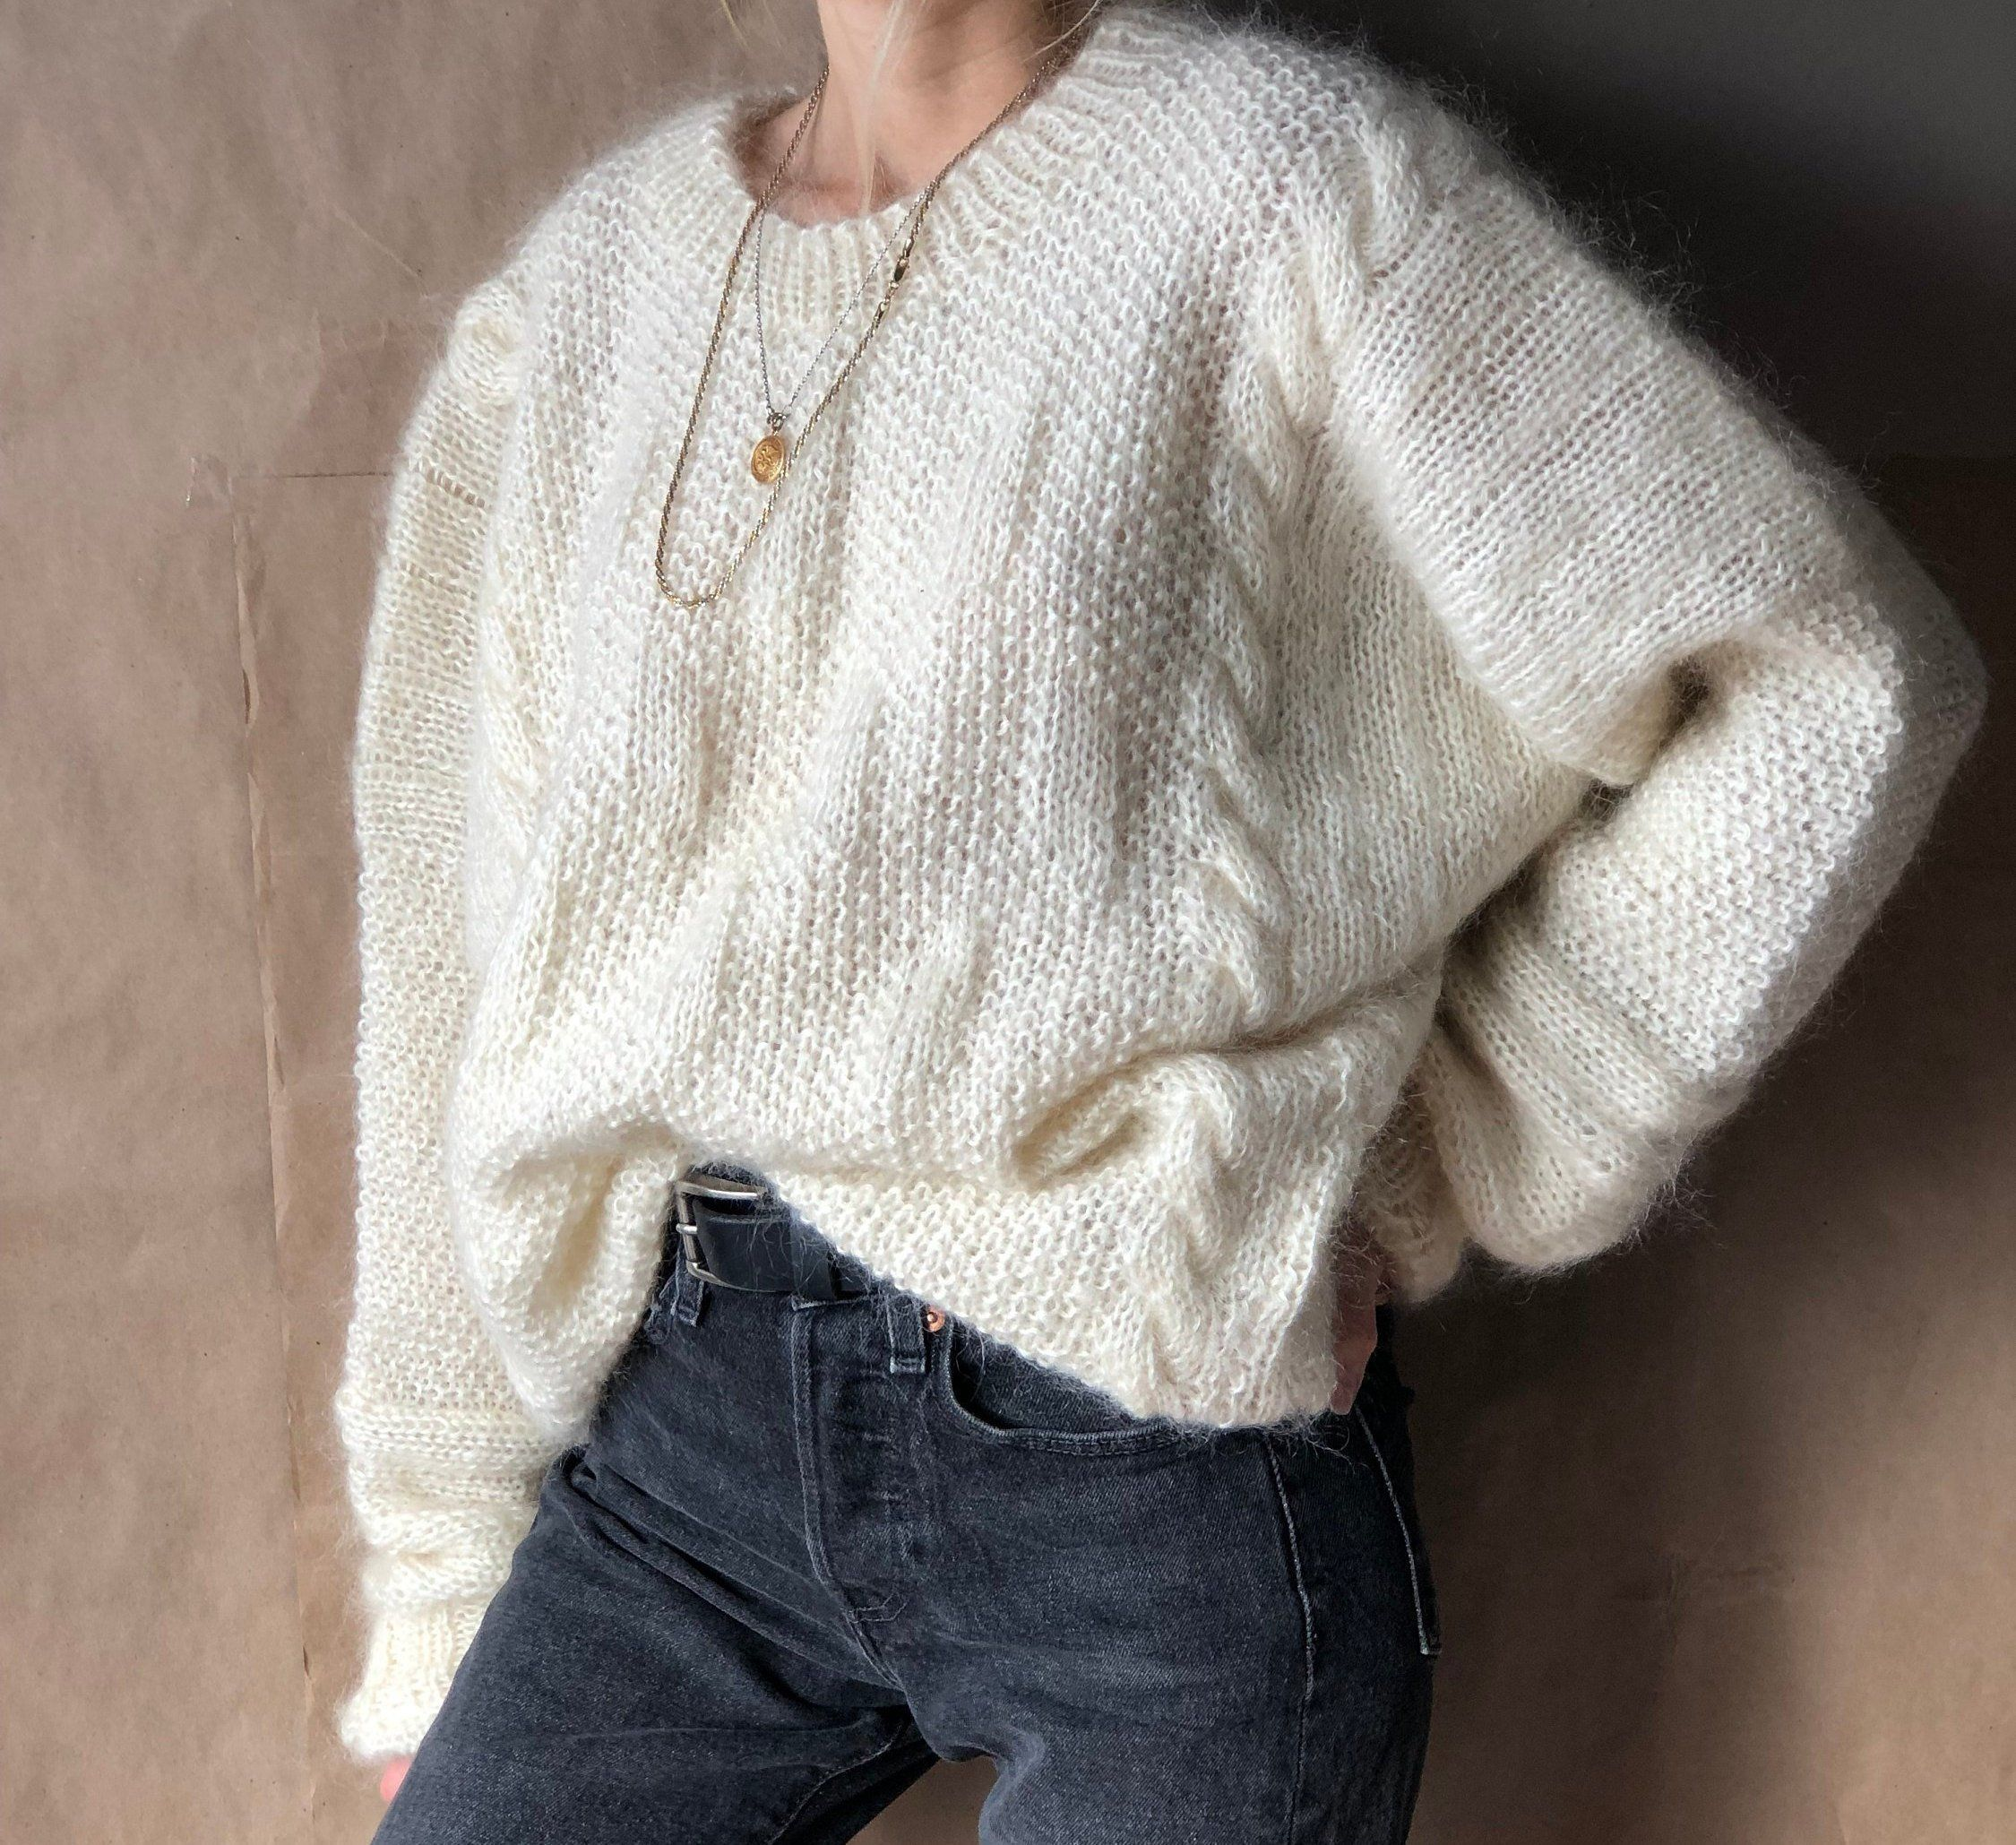 Plaited sweater Wool sweater Cable knit sweater White plaited oversized sweater Handmade sweater